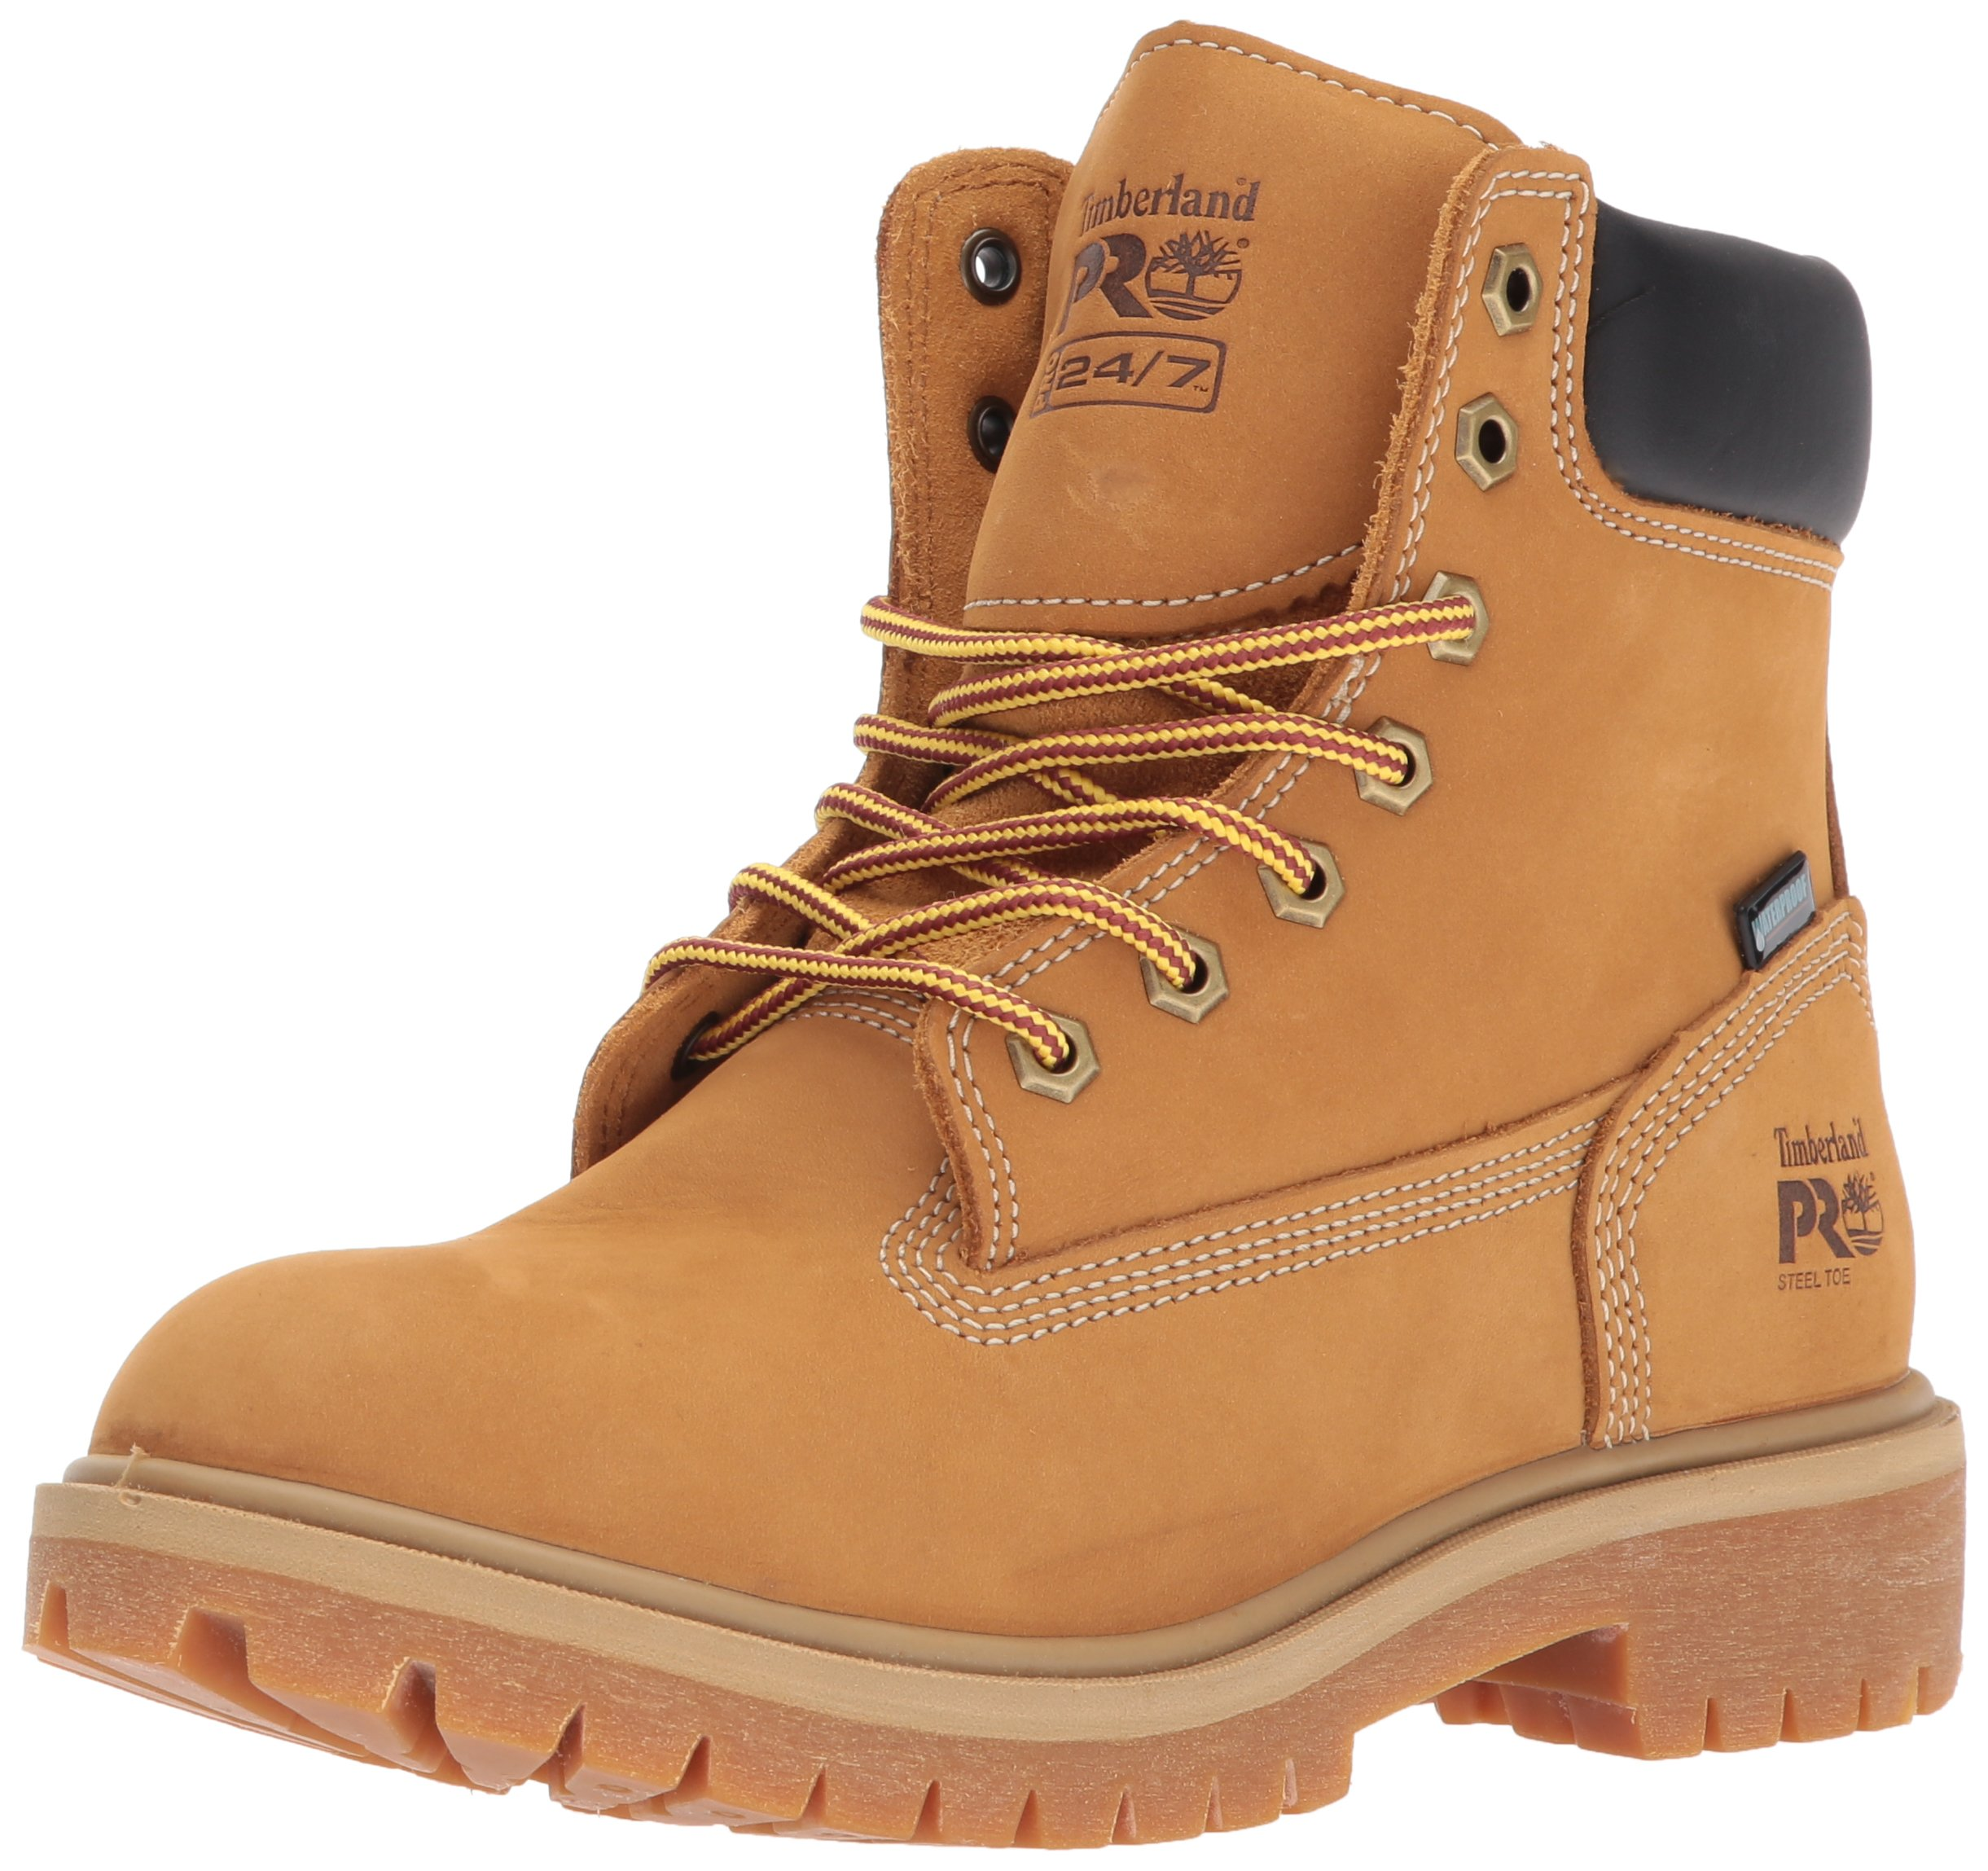 Timberland PRO Women's Direct Attach 6'' Steel Toe Waterproof Insulated Industrial & Construction Shoe, Wheat Nubuck Leather, 8.5 M US by Timberland PRO